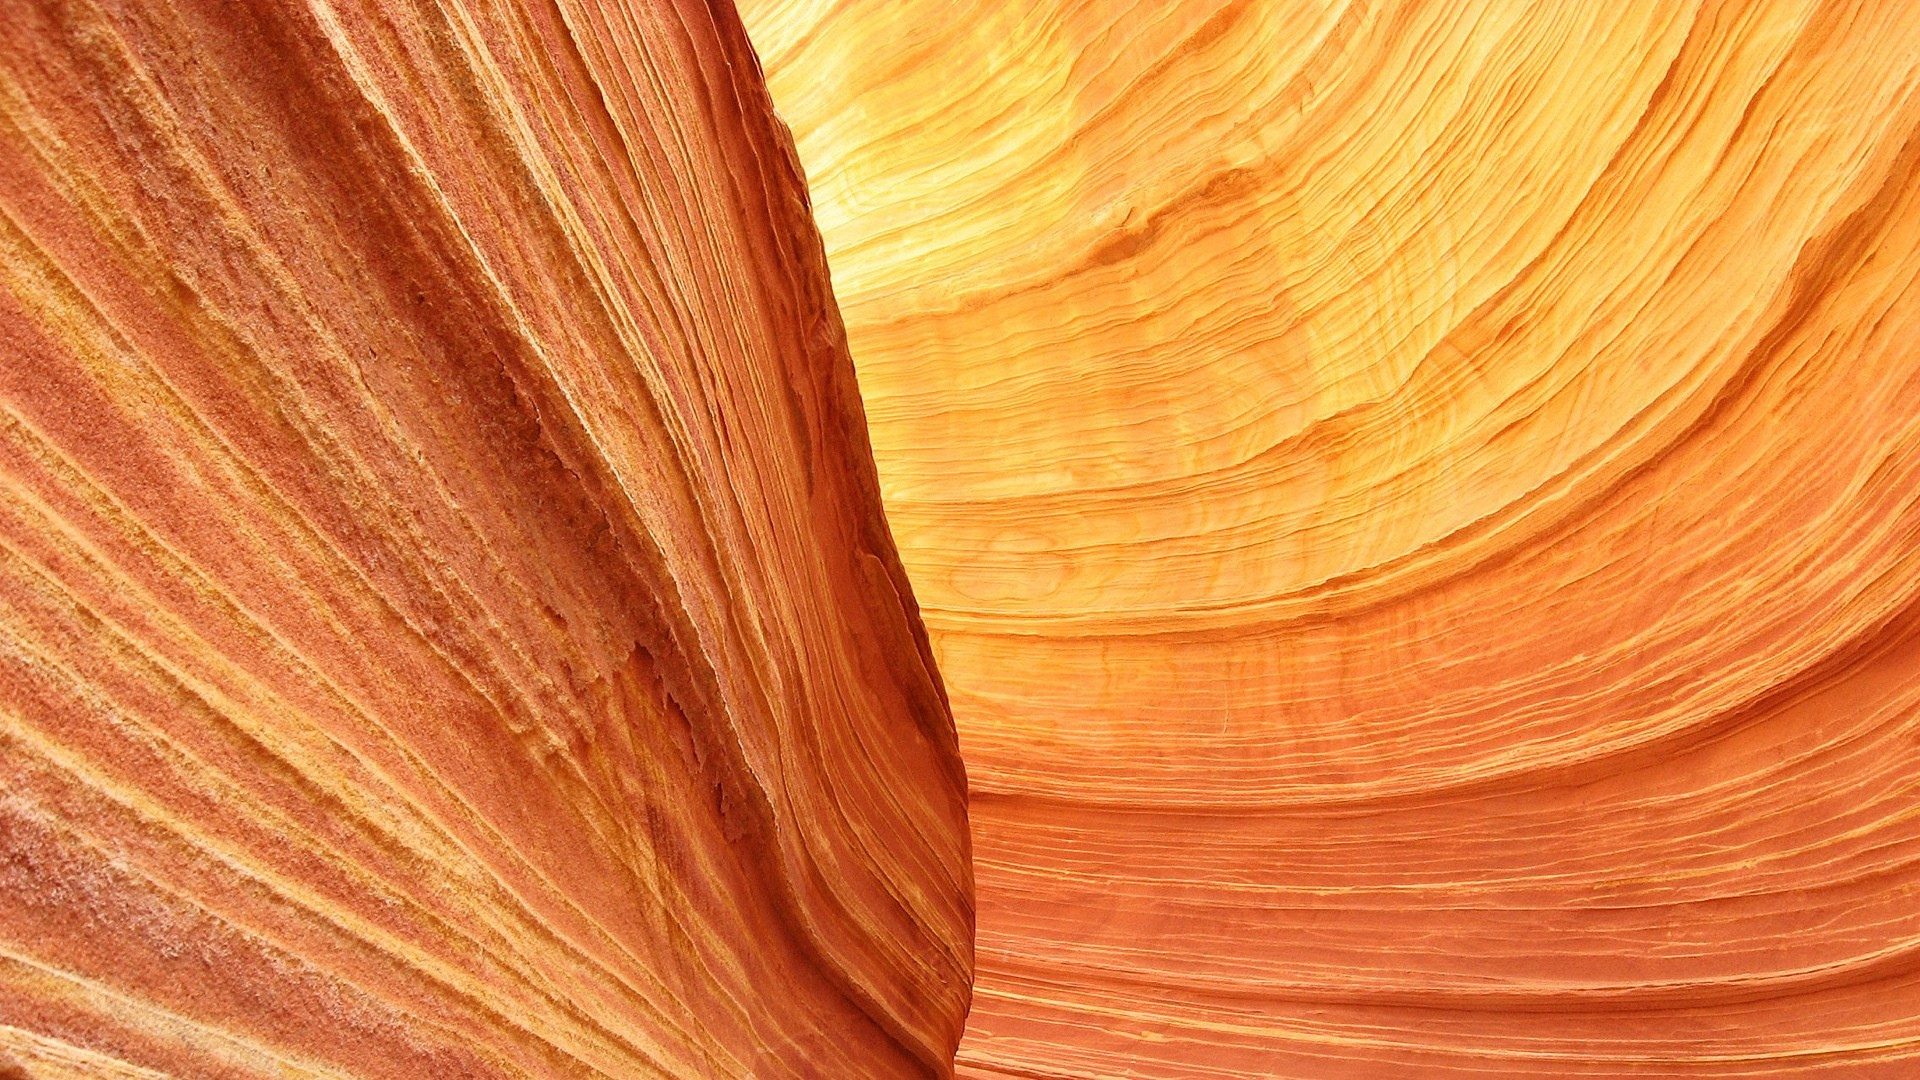 nature rock formations sandstone HD Wallpaper